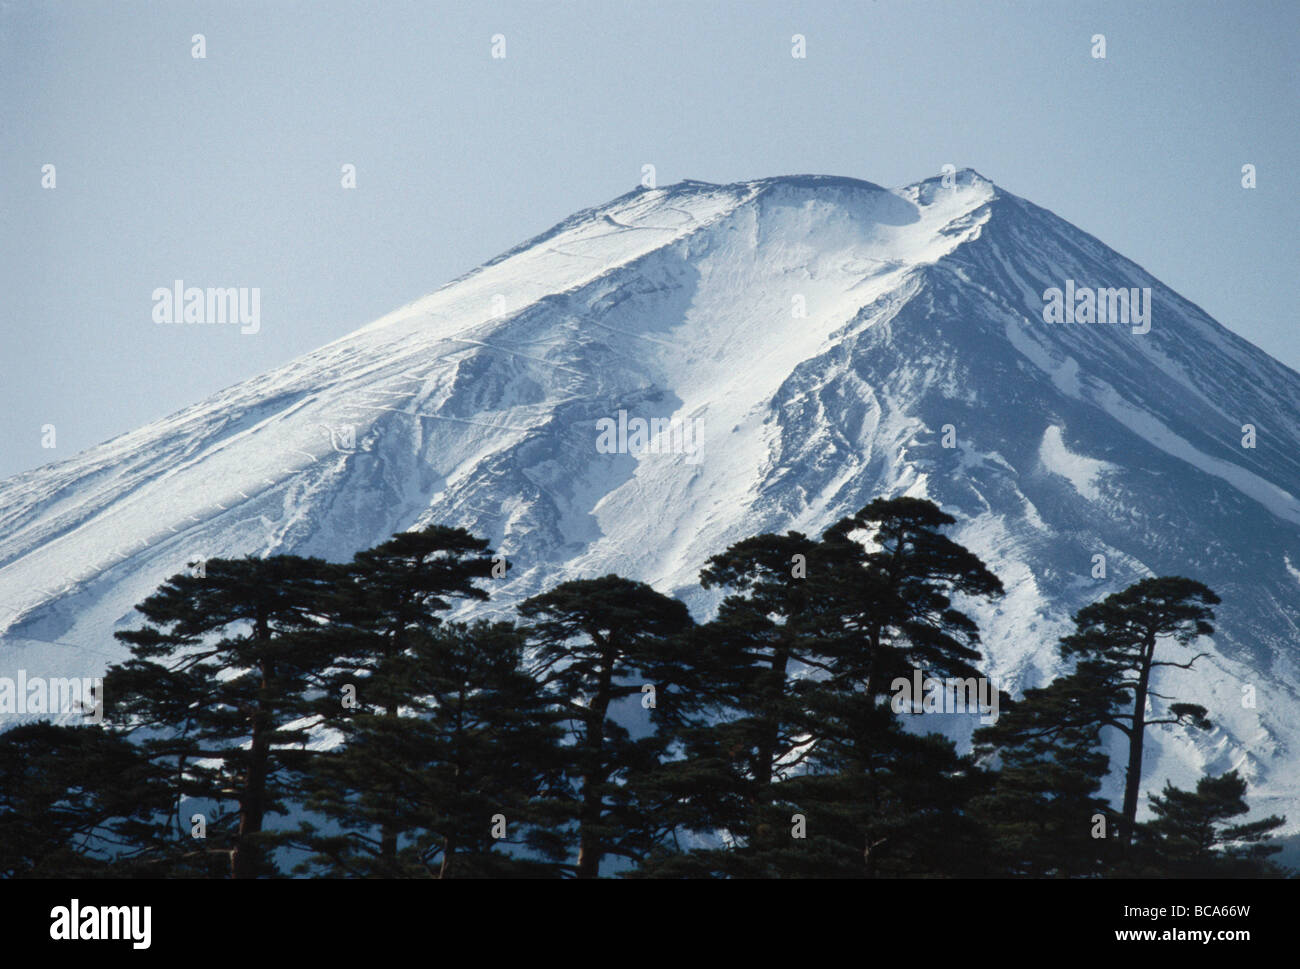 View of the Fujijama, Fujisan, Fuji, the highest mountain in Japan, Honshu, Japan - Stock Image